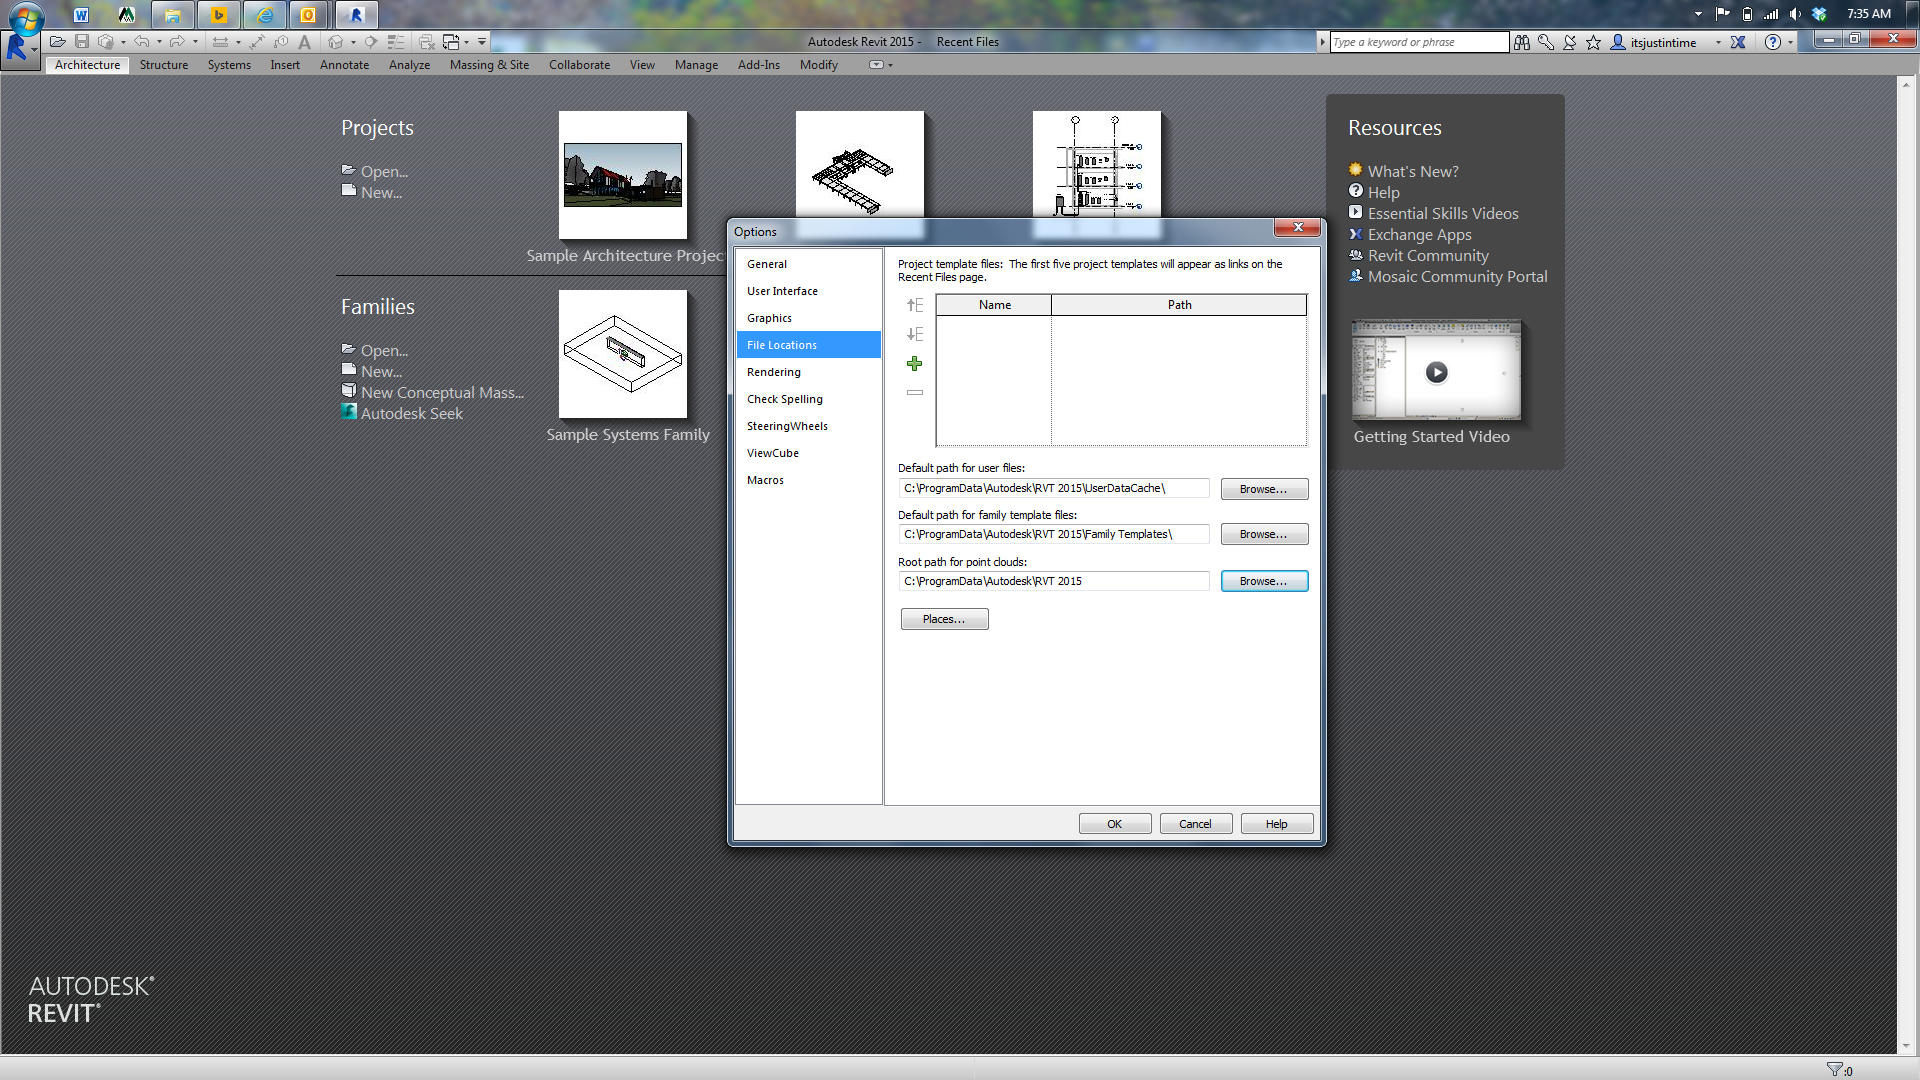 Revit 2015 family template file location page 3 autodesk community pronofoot35fo Image collections